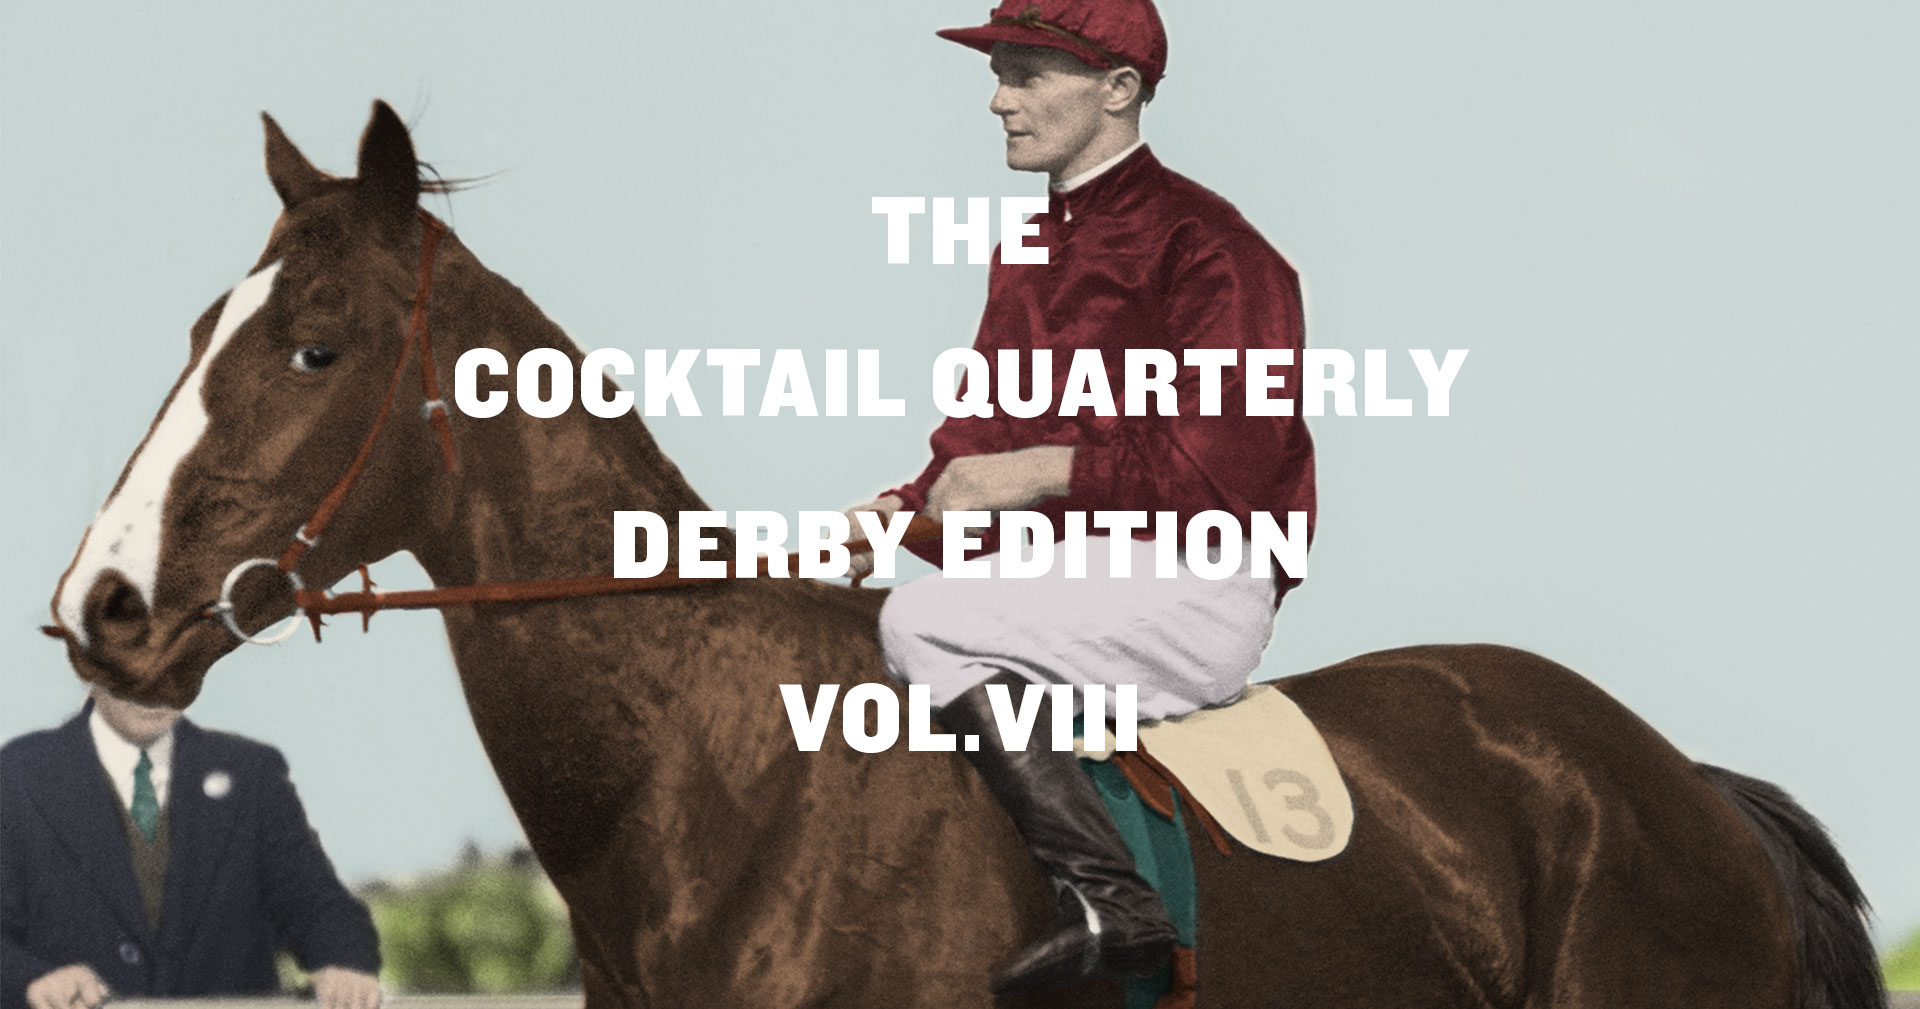 The Cocktail Quarterly Derby Edition